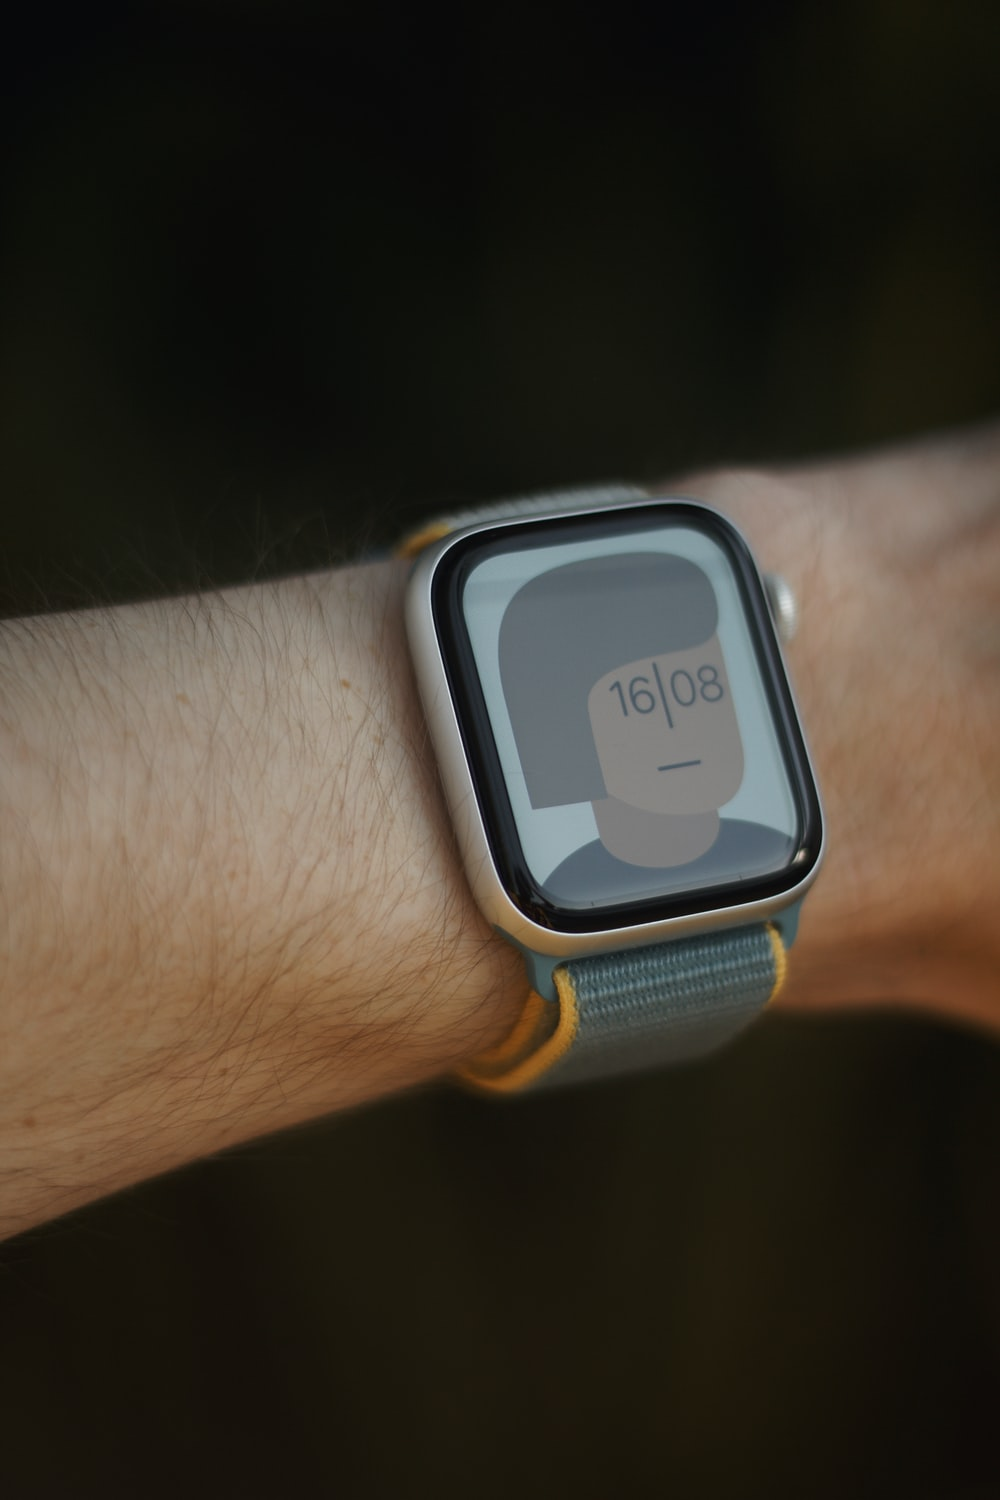 silver and black smart watch